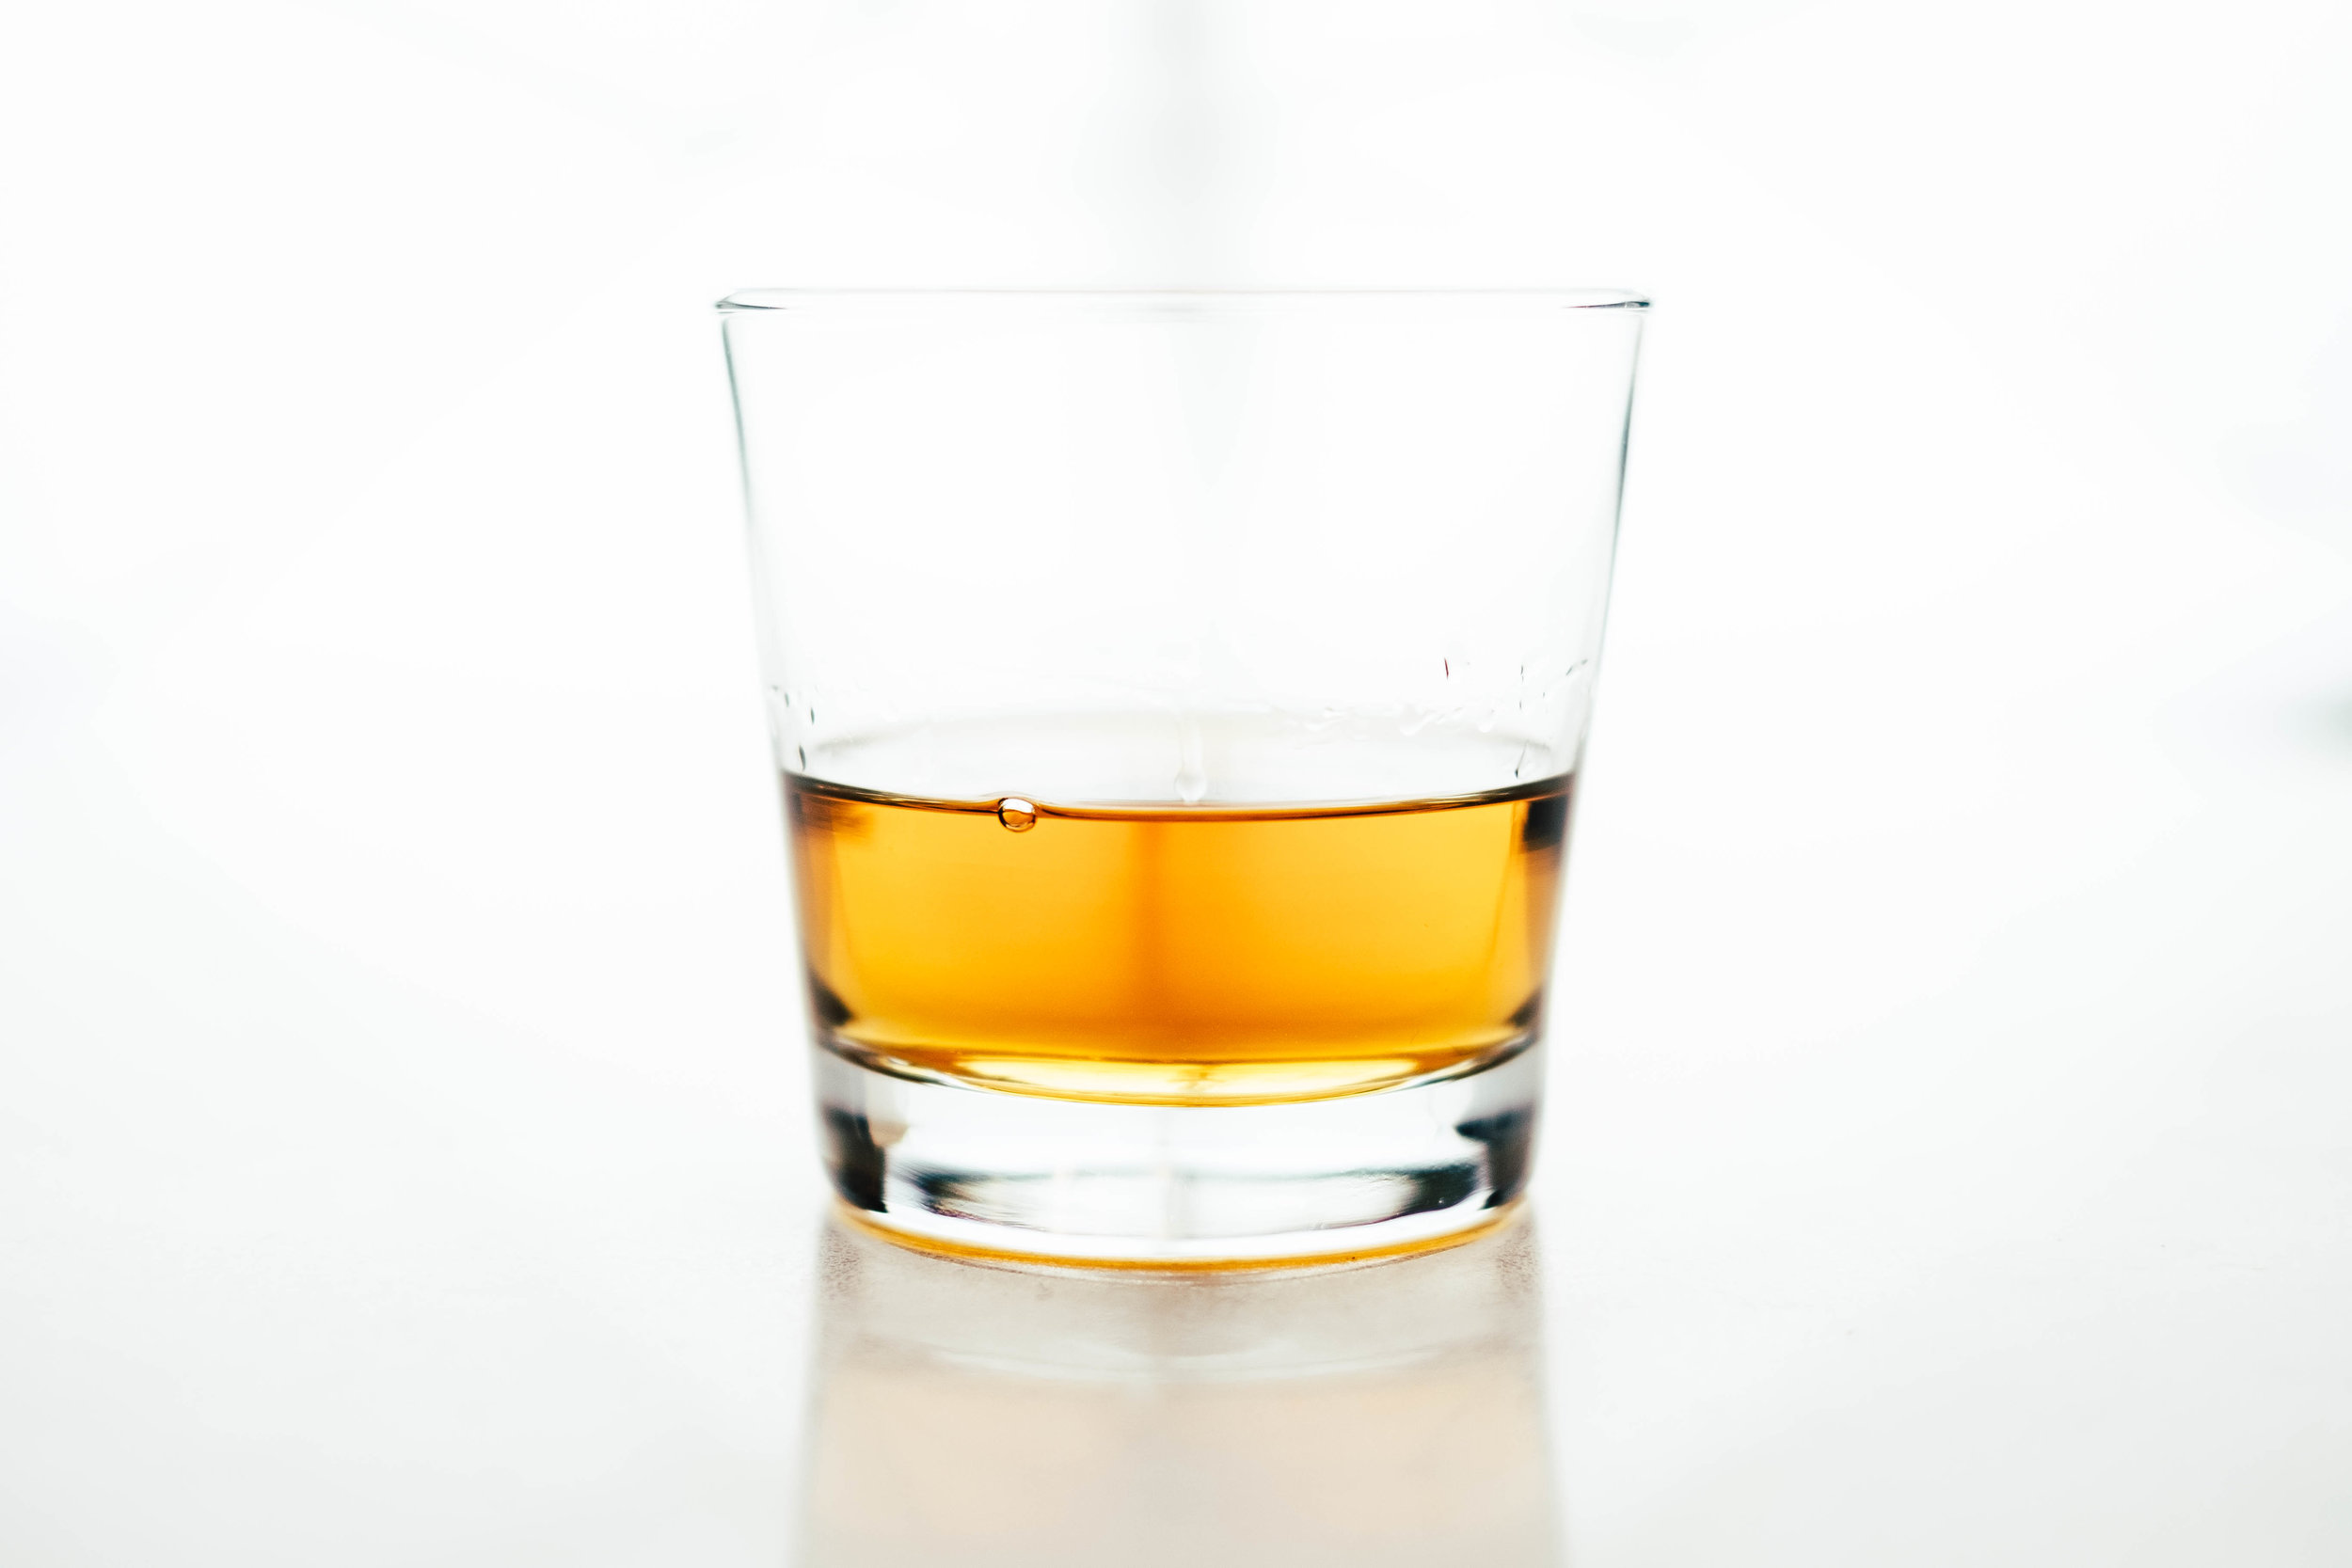 SENSIBLE WHISKEY TASTING - fine whiskey selection & accoutrementsstarting at $21 per person